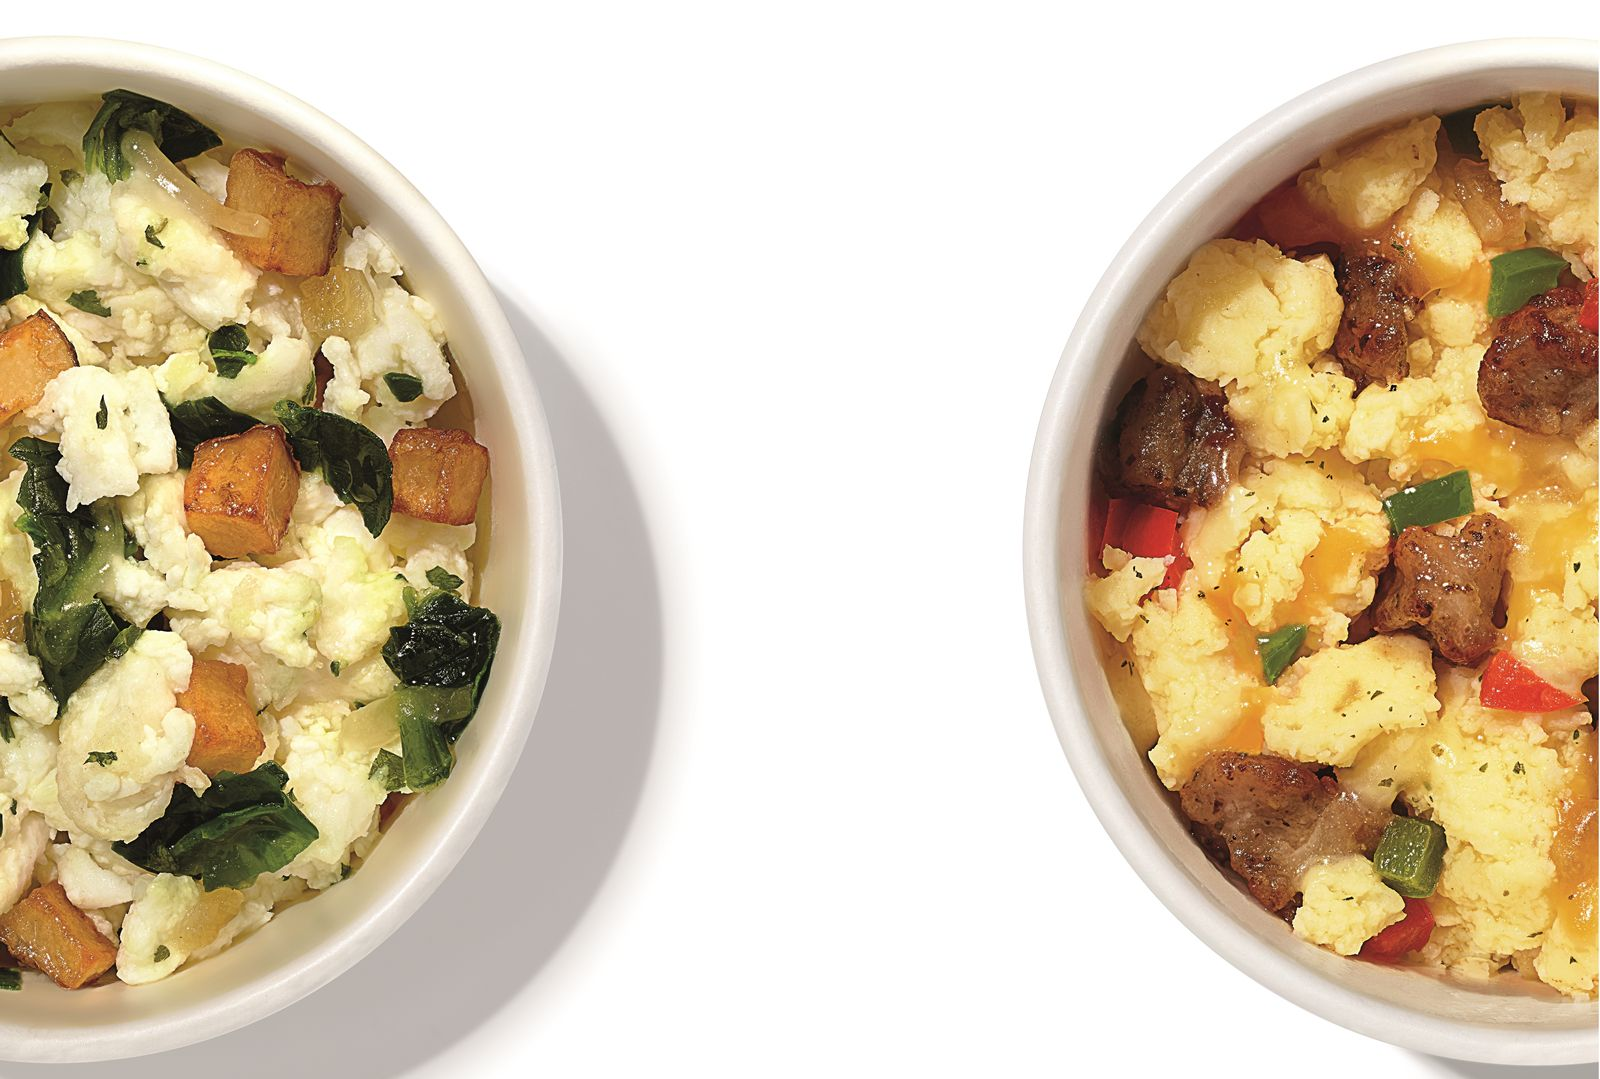 Dunkin' Further Powers Up its Menu with Two New Dunkin' Bowls - Sausage Scramble Bowl and Egg White Bowl